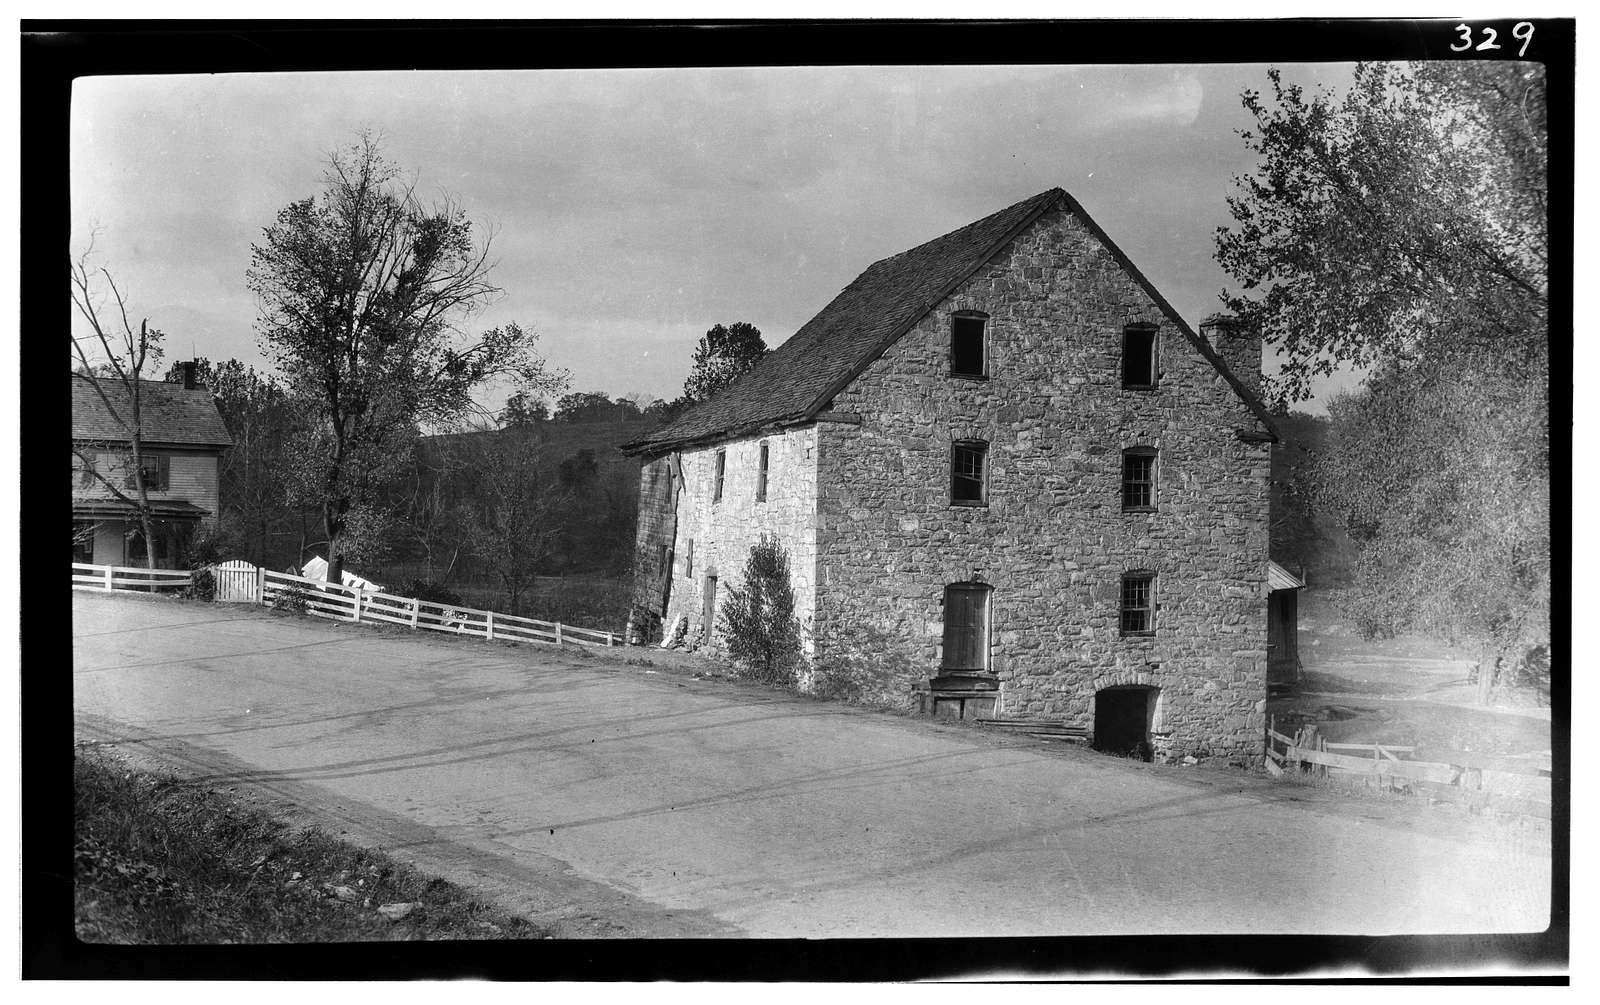 Burwell Mill, State Route 723, Millwood, Clarke County, VA